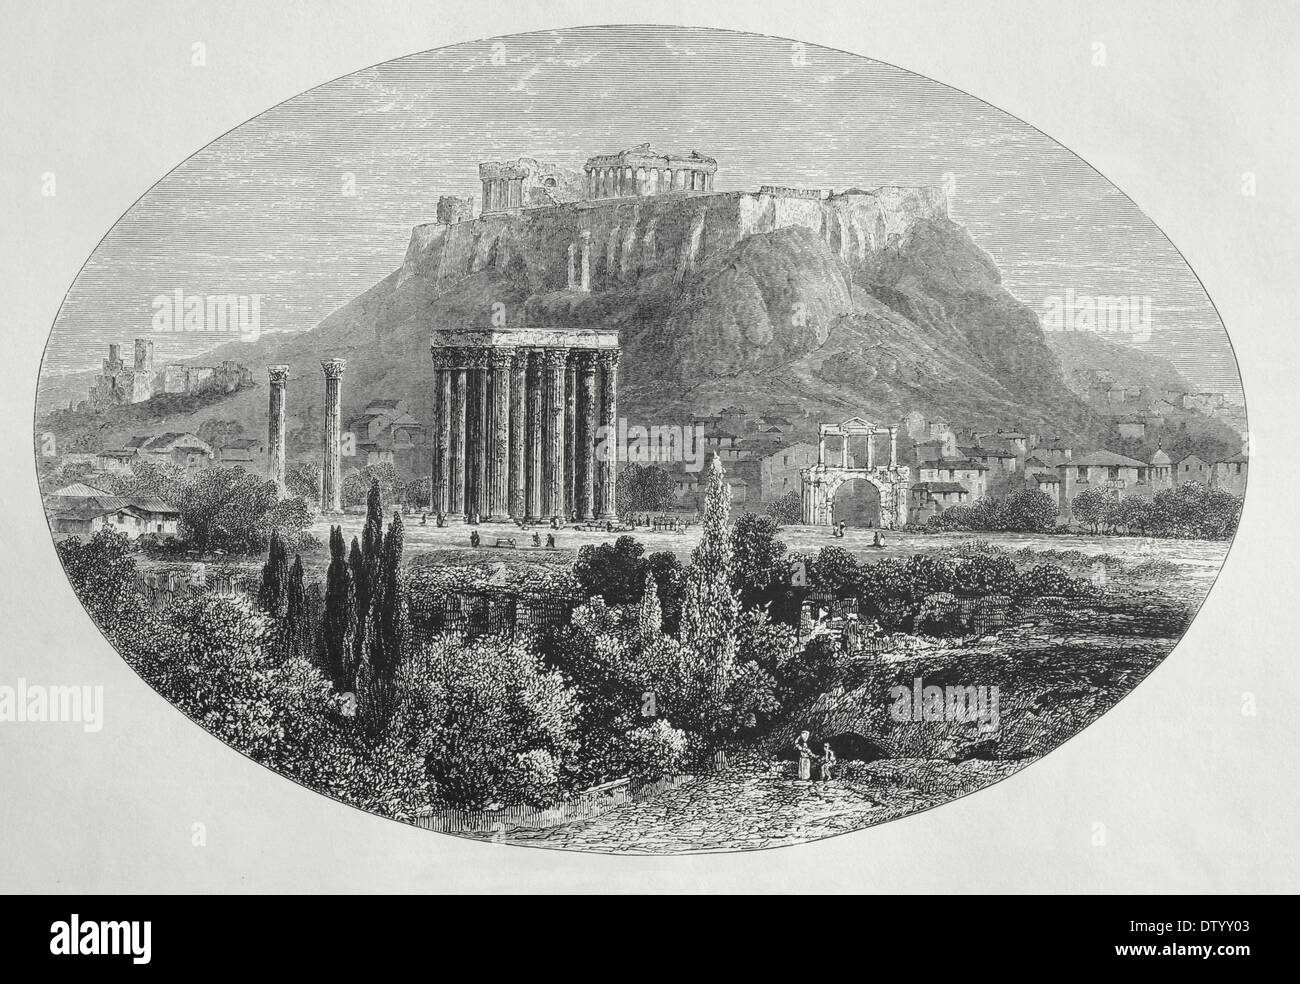 Greece. Athens. Temple of Jupiter and Acropolis Athens. Wood engraving by Edward Whymper, 1879. - Stock Image